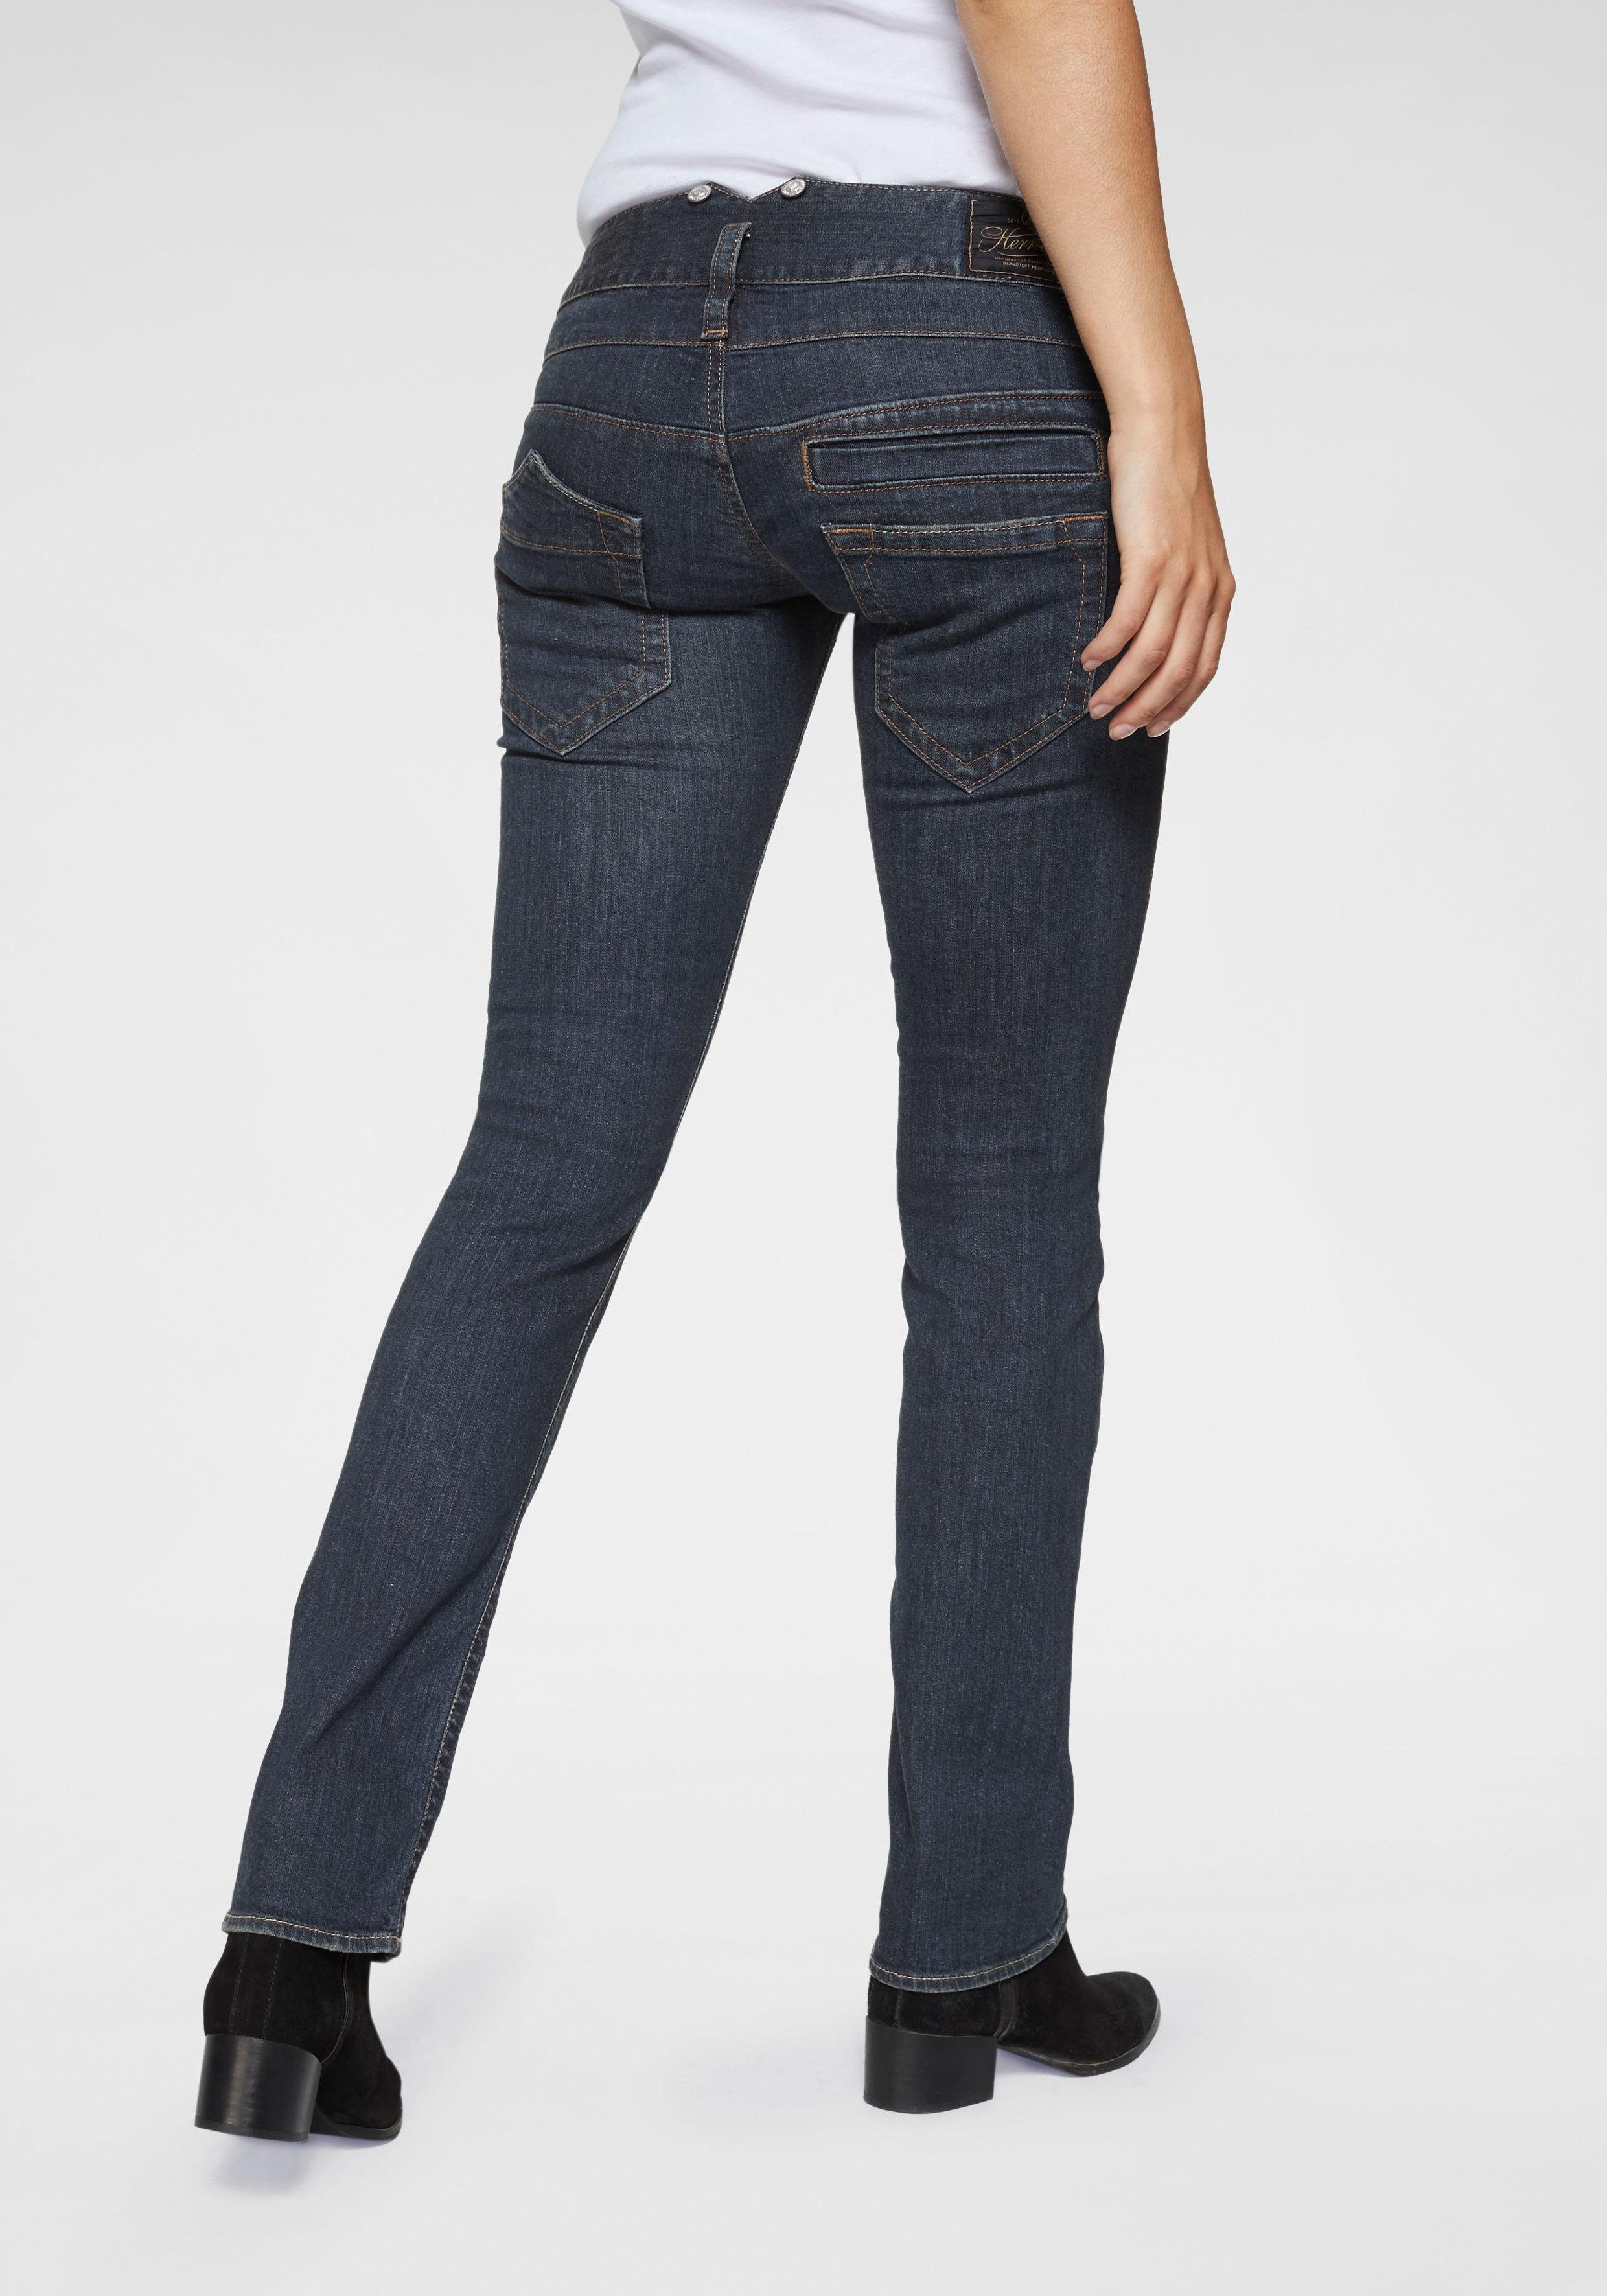 Damen Herrlicher Straight-Jeans »PITCH« Low Waist mit leichtem Push-Up-Effekt  | 04053192759627